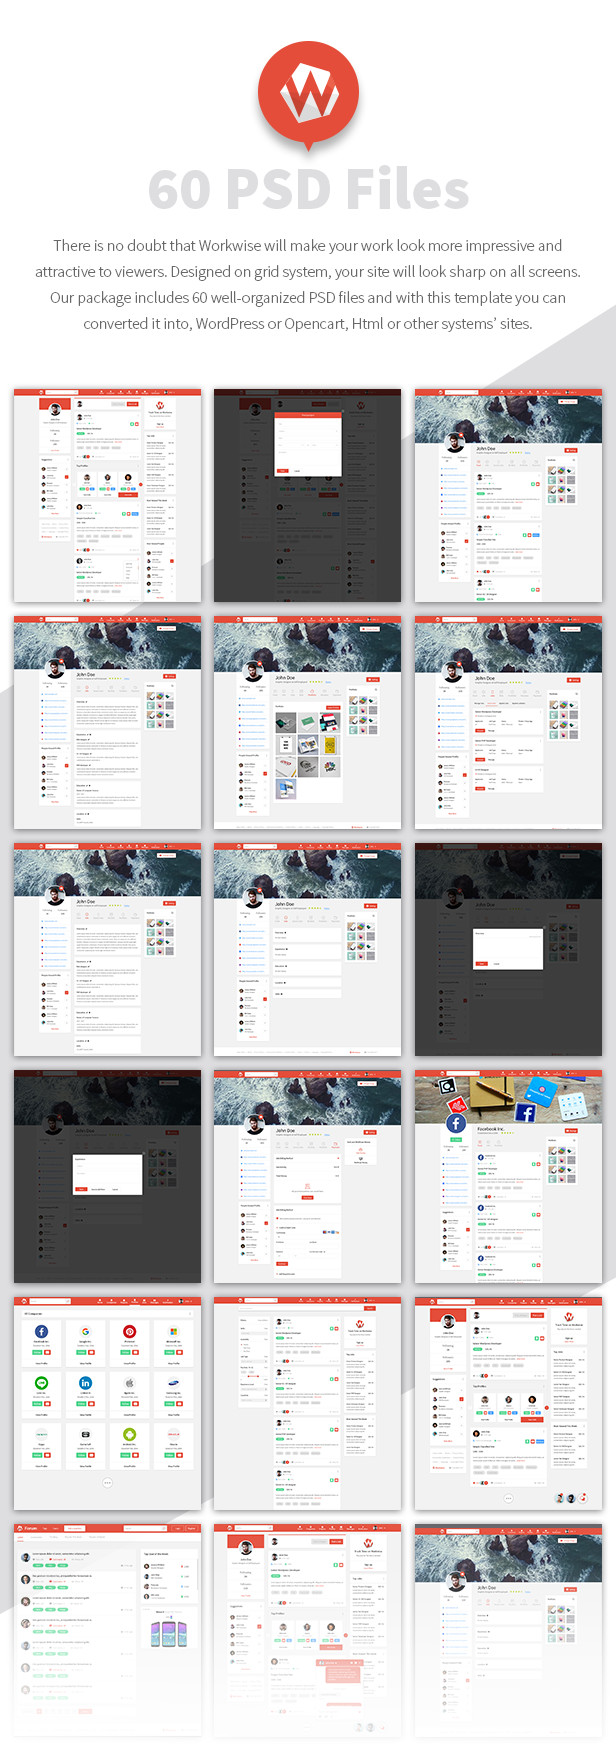 Workwise - The Freelancer And Social Networking PSD Template - 3